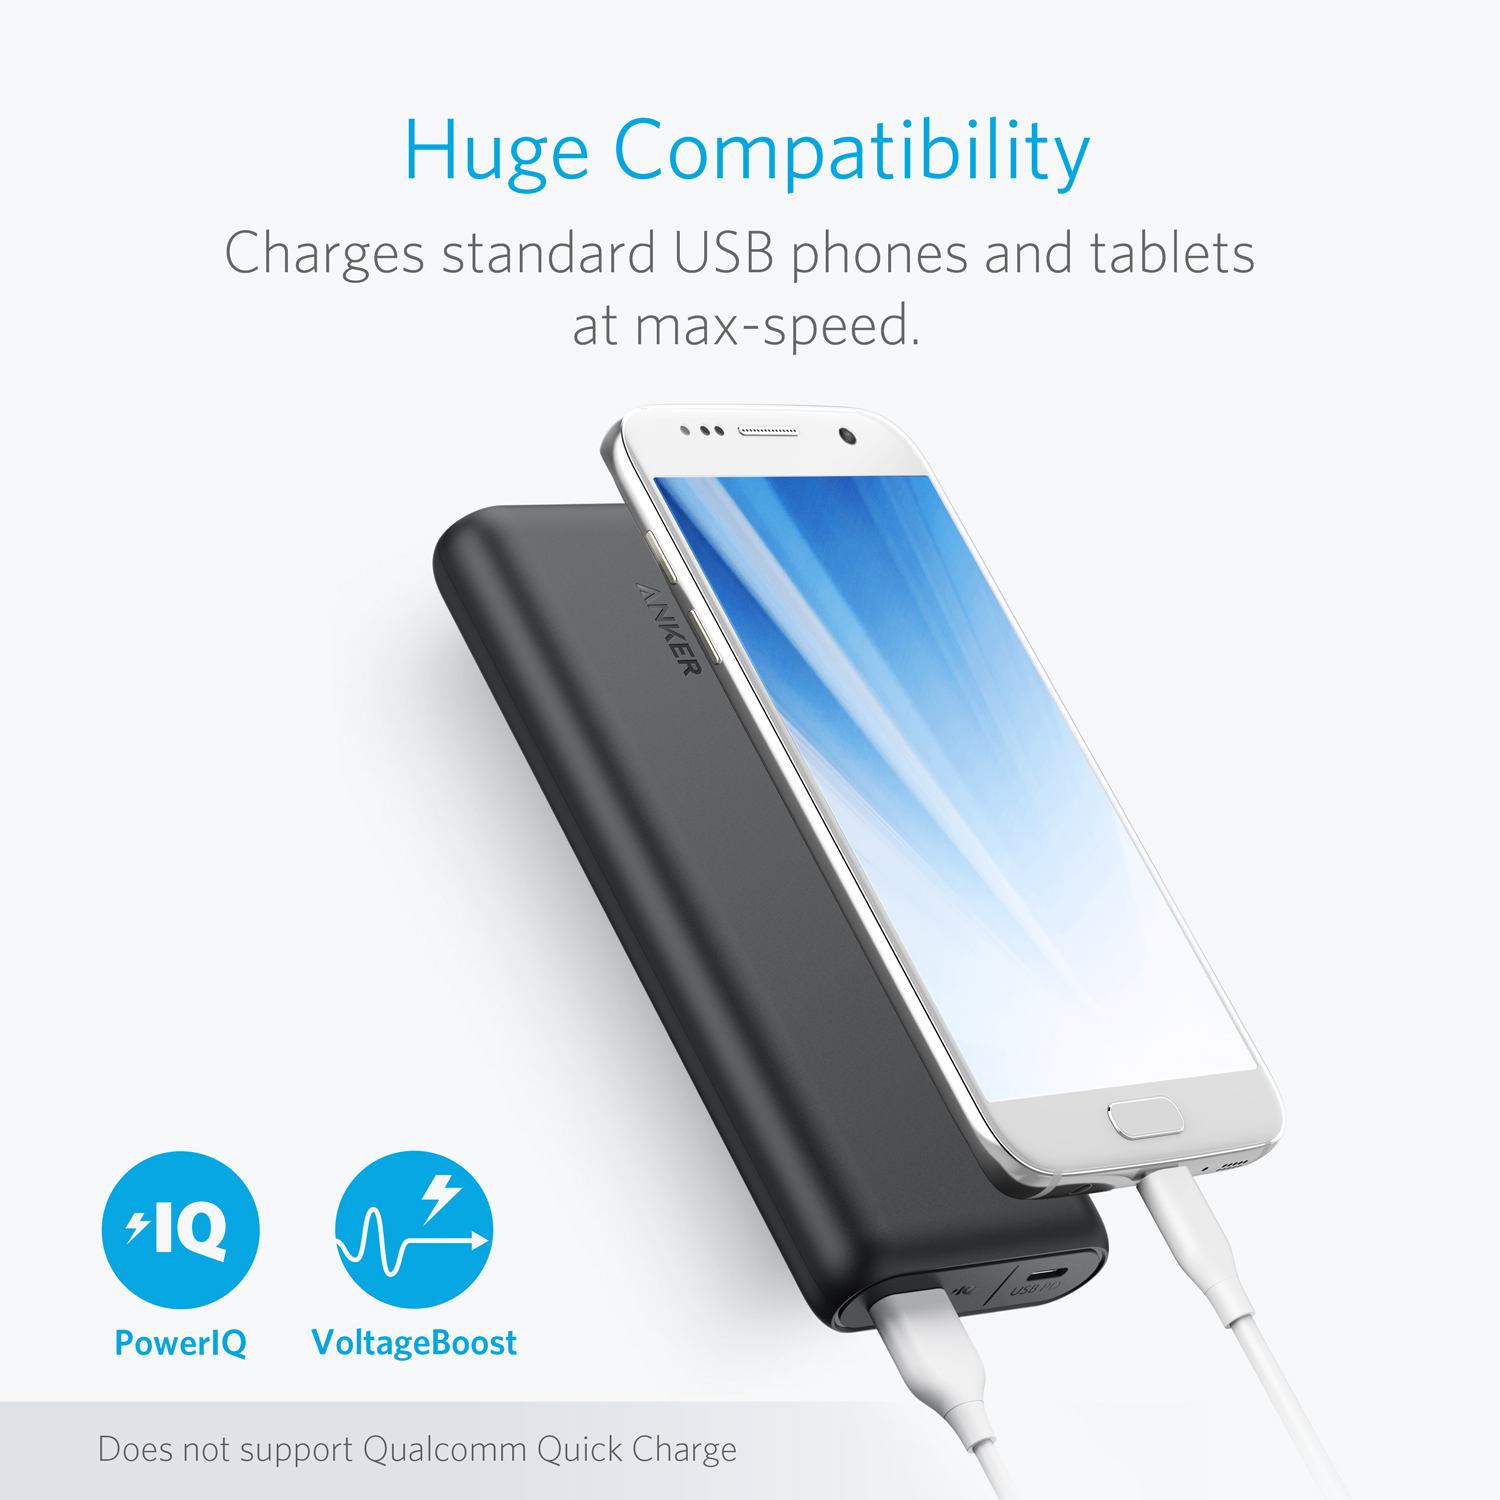 Anker PowerCore Speed 20100 with USB-C Power Delivery and